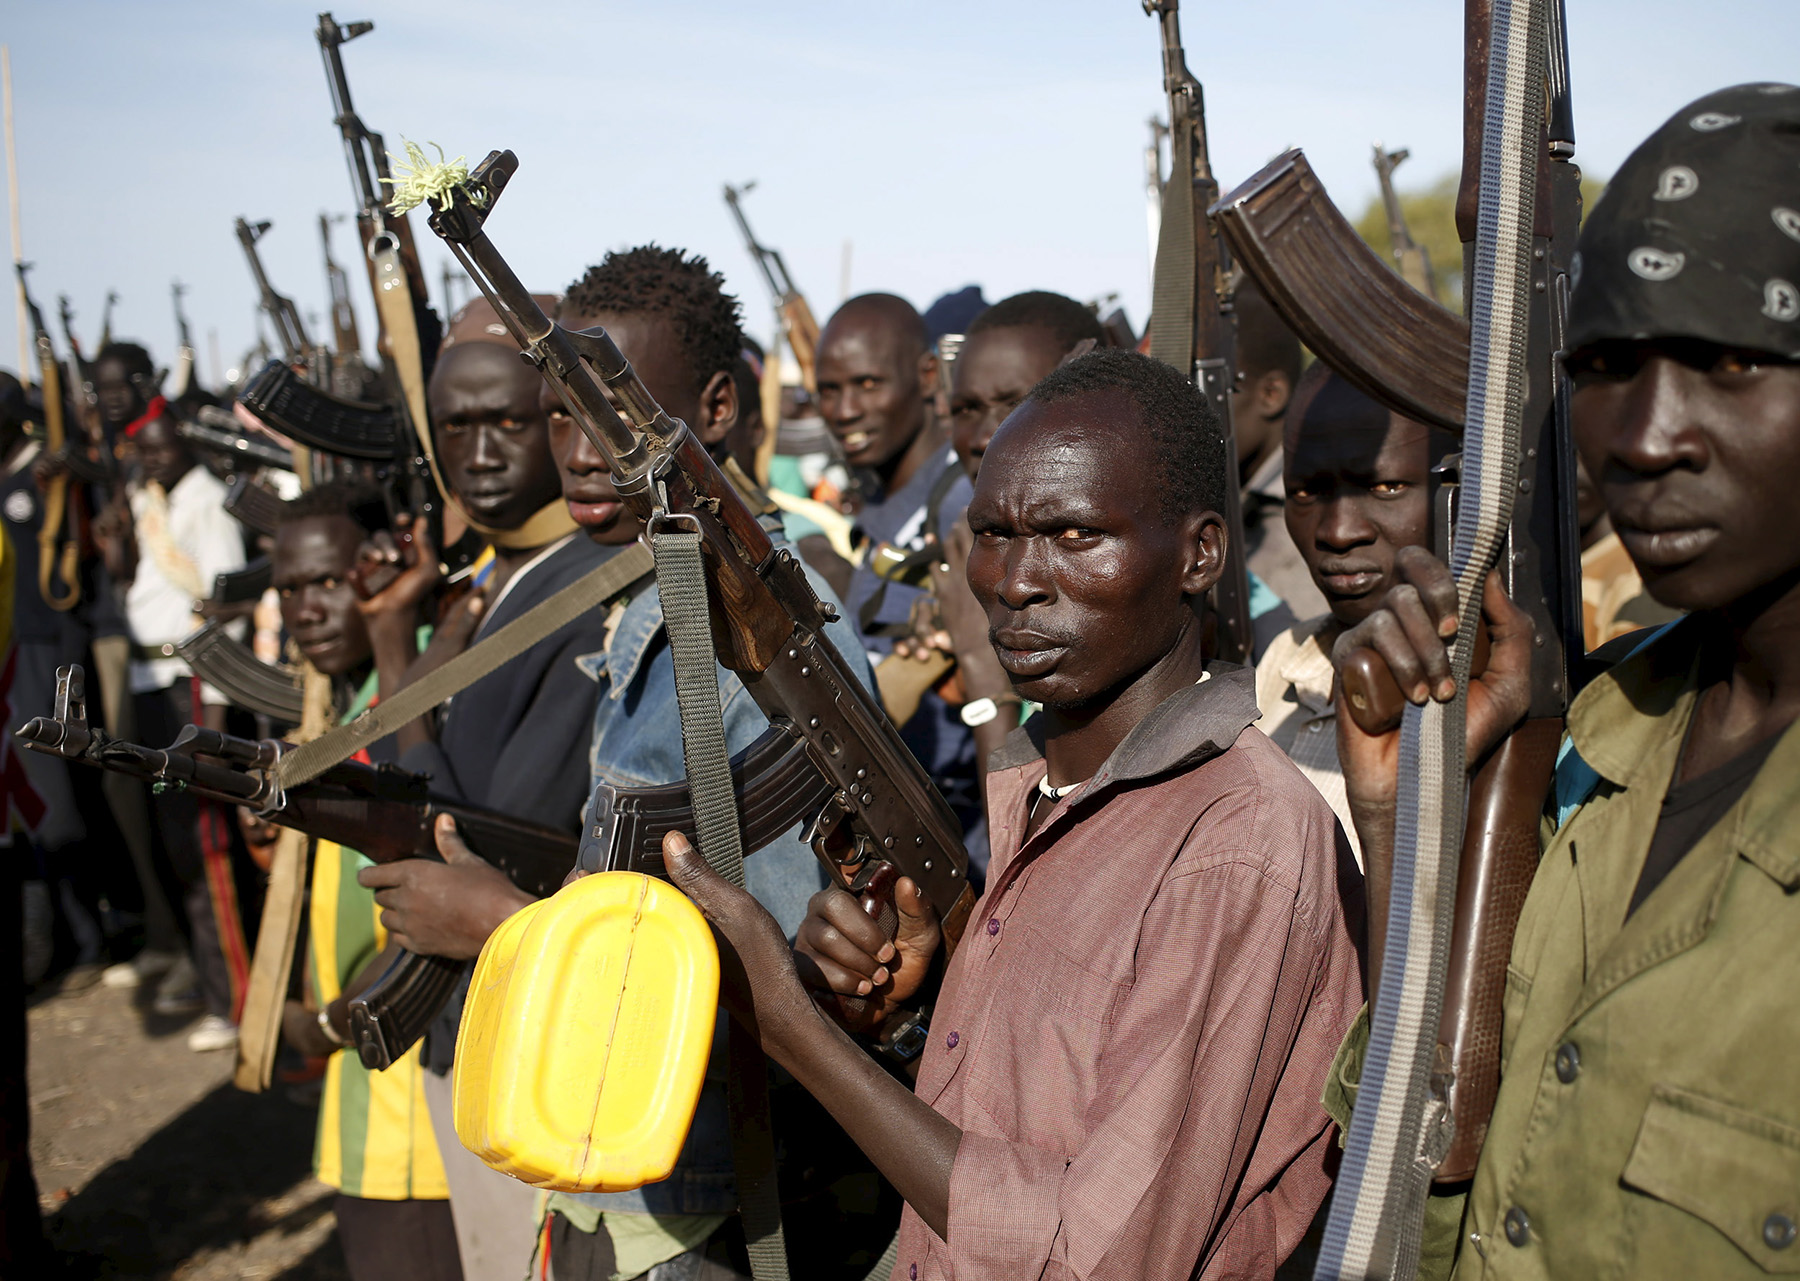 Jikany Nuer White Army fighters in Upper Nile - Reuters/Goran Tomasevic